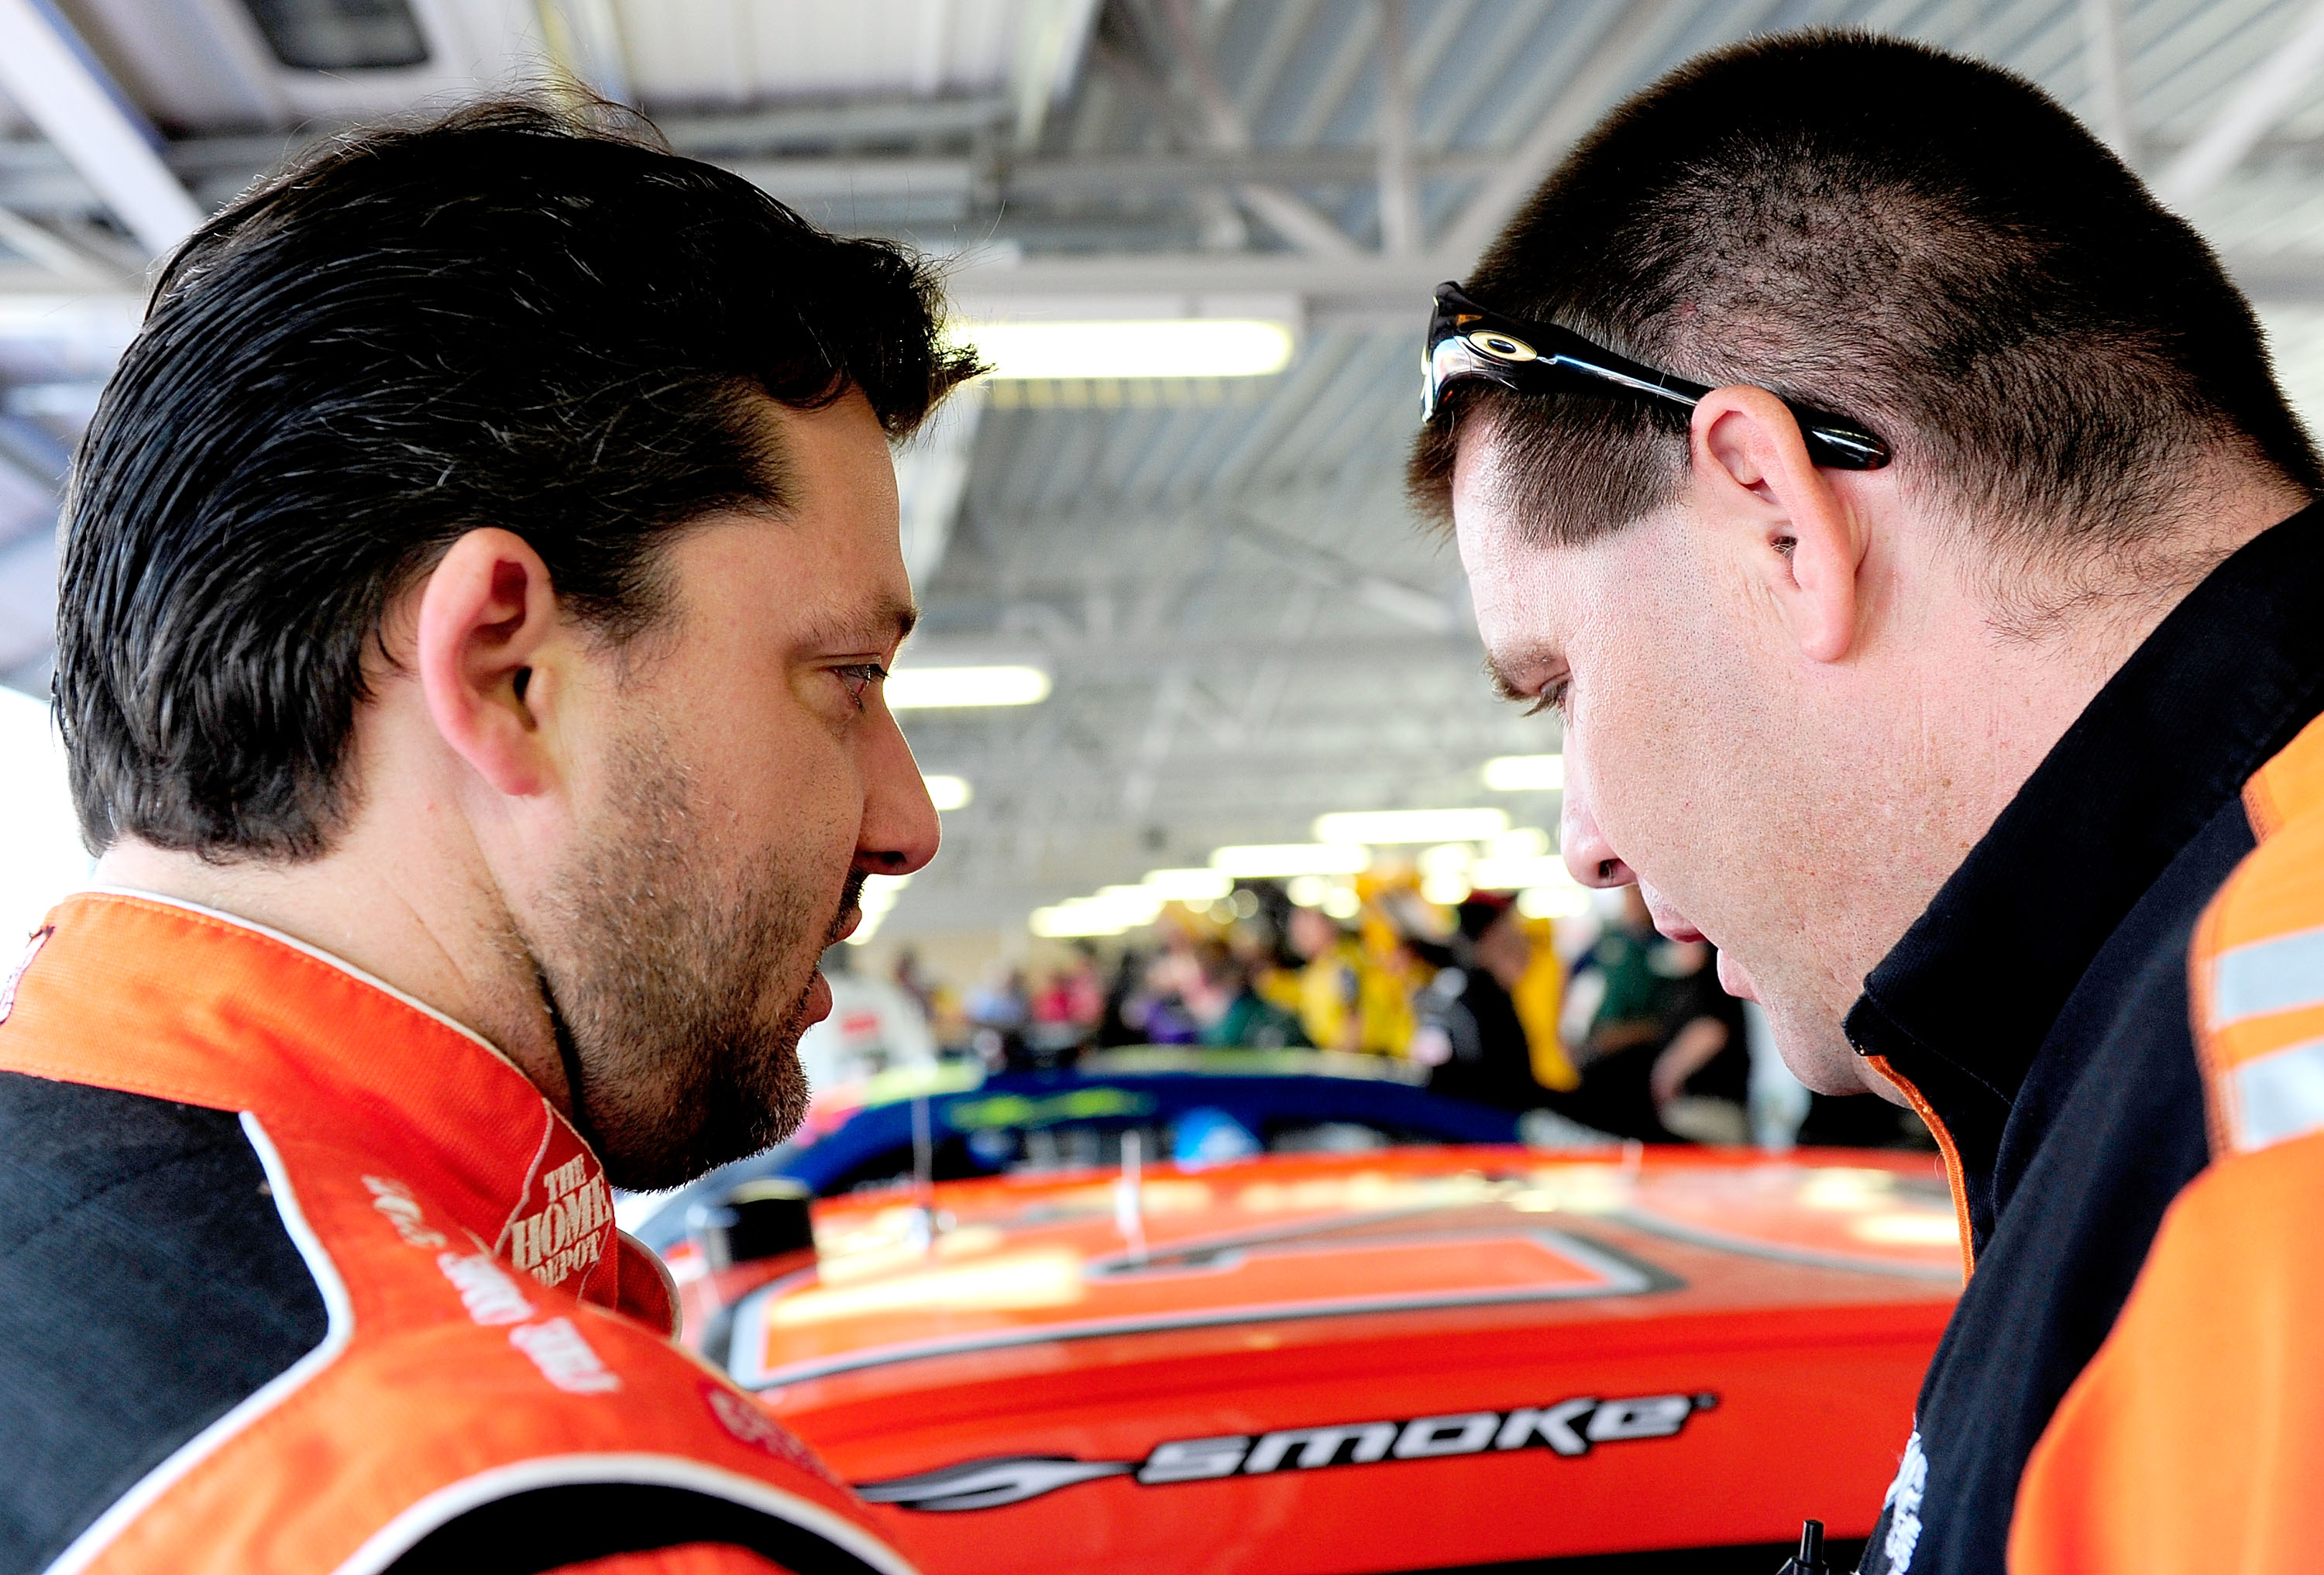 Tony Stewart has won a NASCAR Sprint Cup Title the conventional way an in the Chase format.